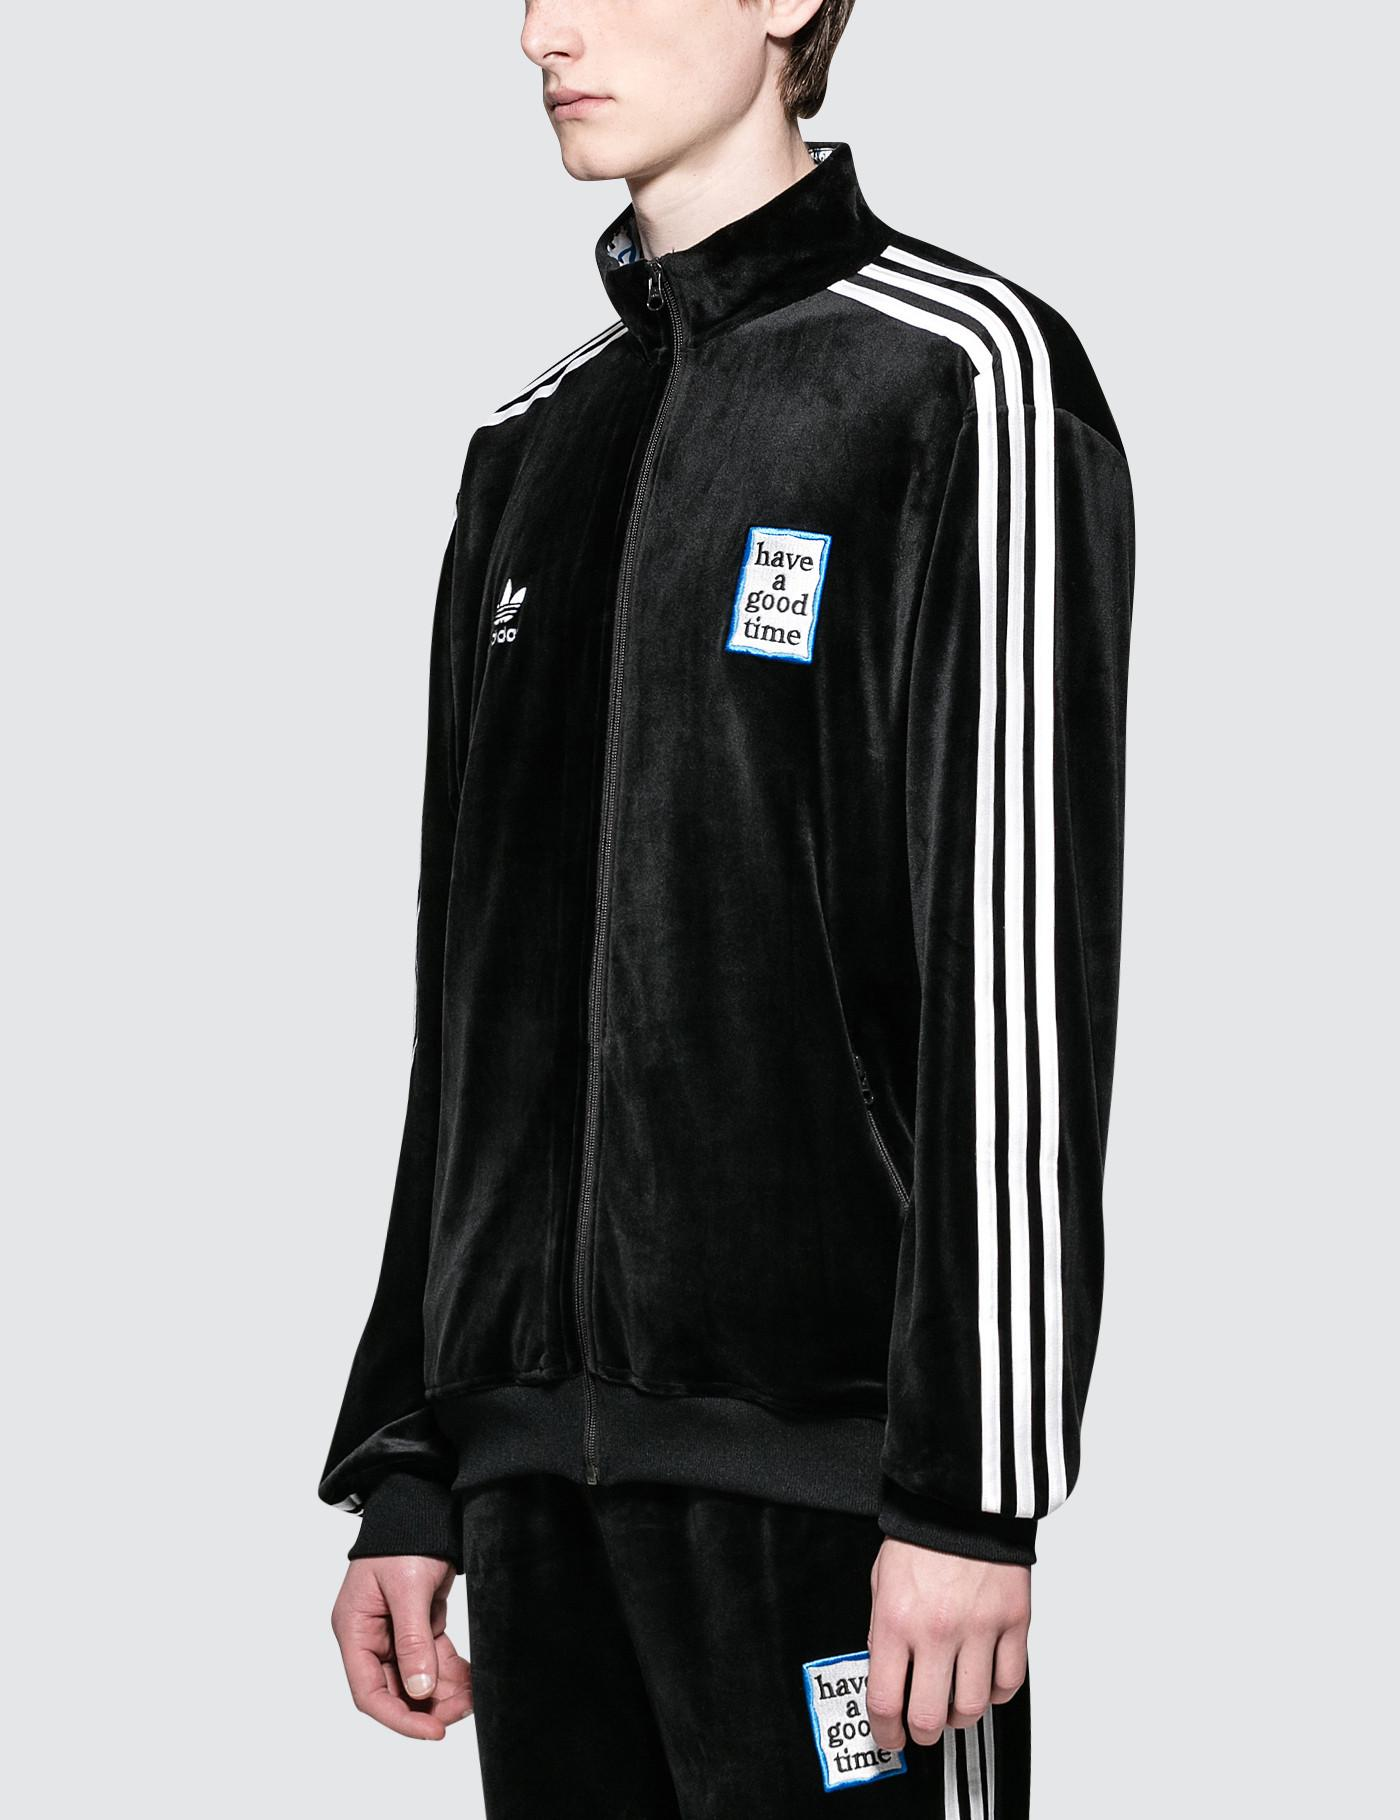 2a2c0eb33c46 Lyst - adidas Originals Have A Good Time X Adidas Velour Track Jacket in  Black for Men